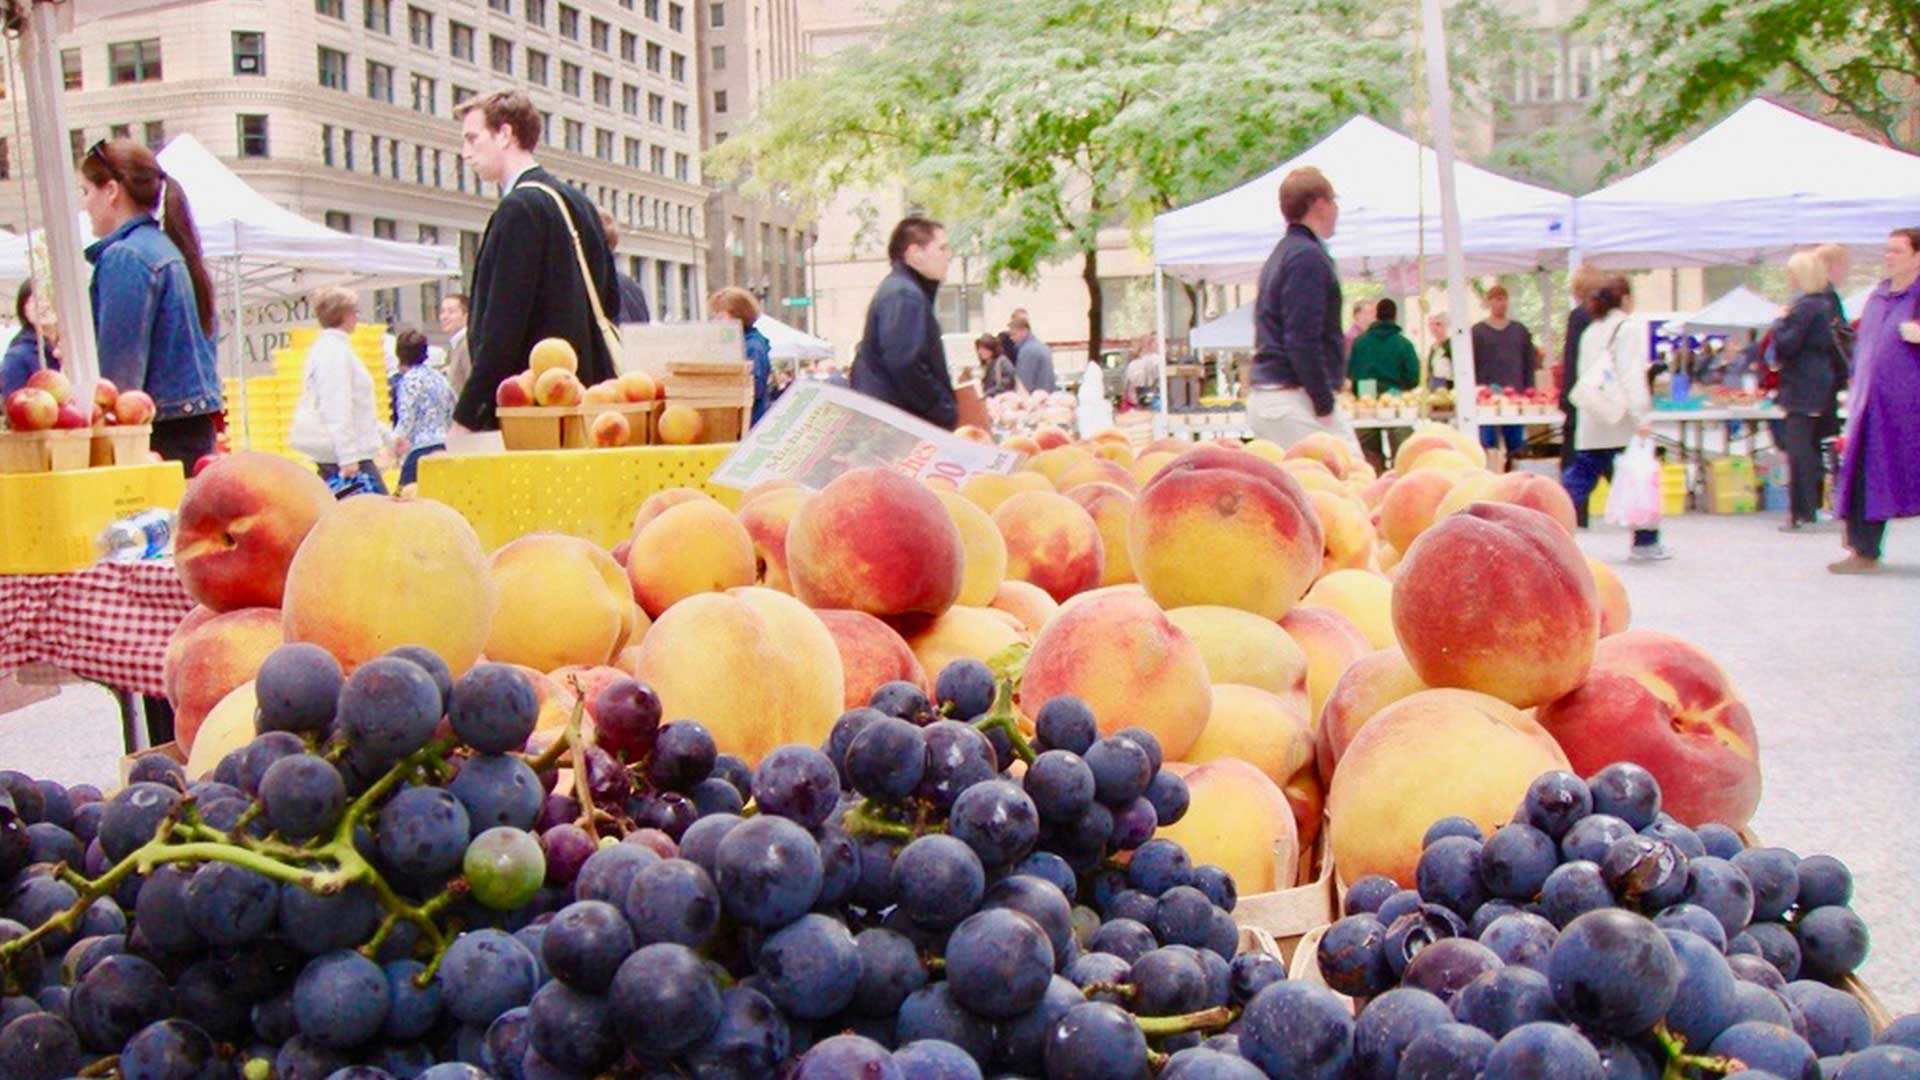 A fruit stand at a farmers market in Chicago, Illinois